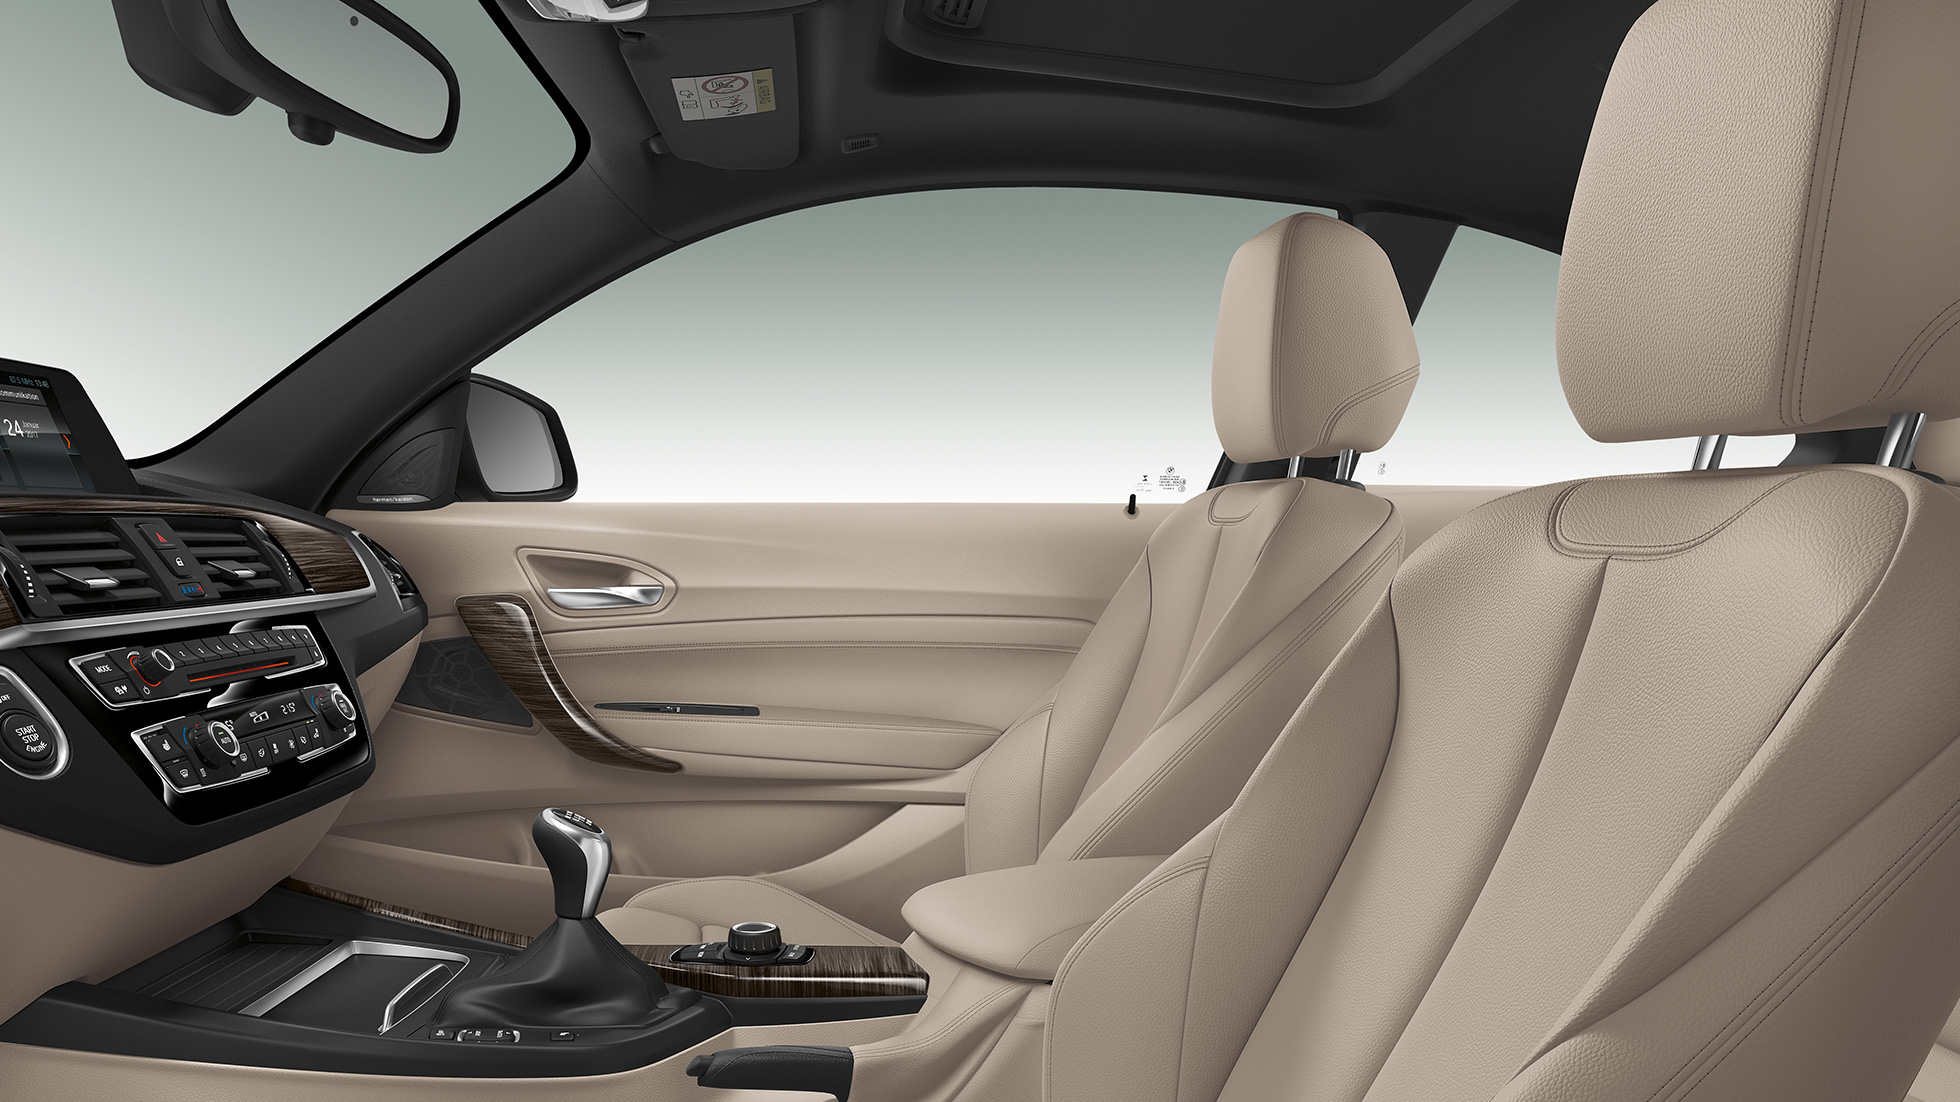 BMW 2 Series Coupé, Model Luxury Line interior